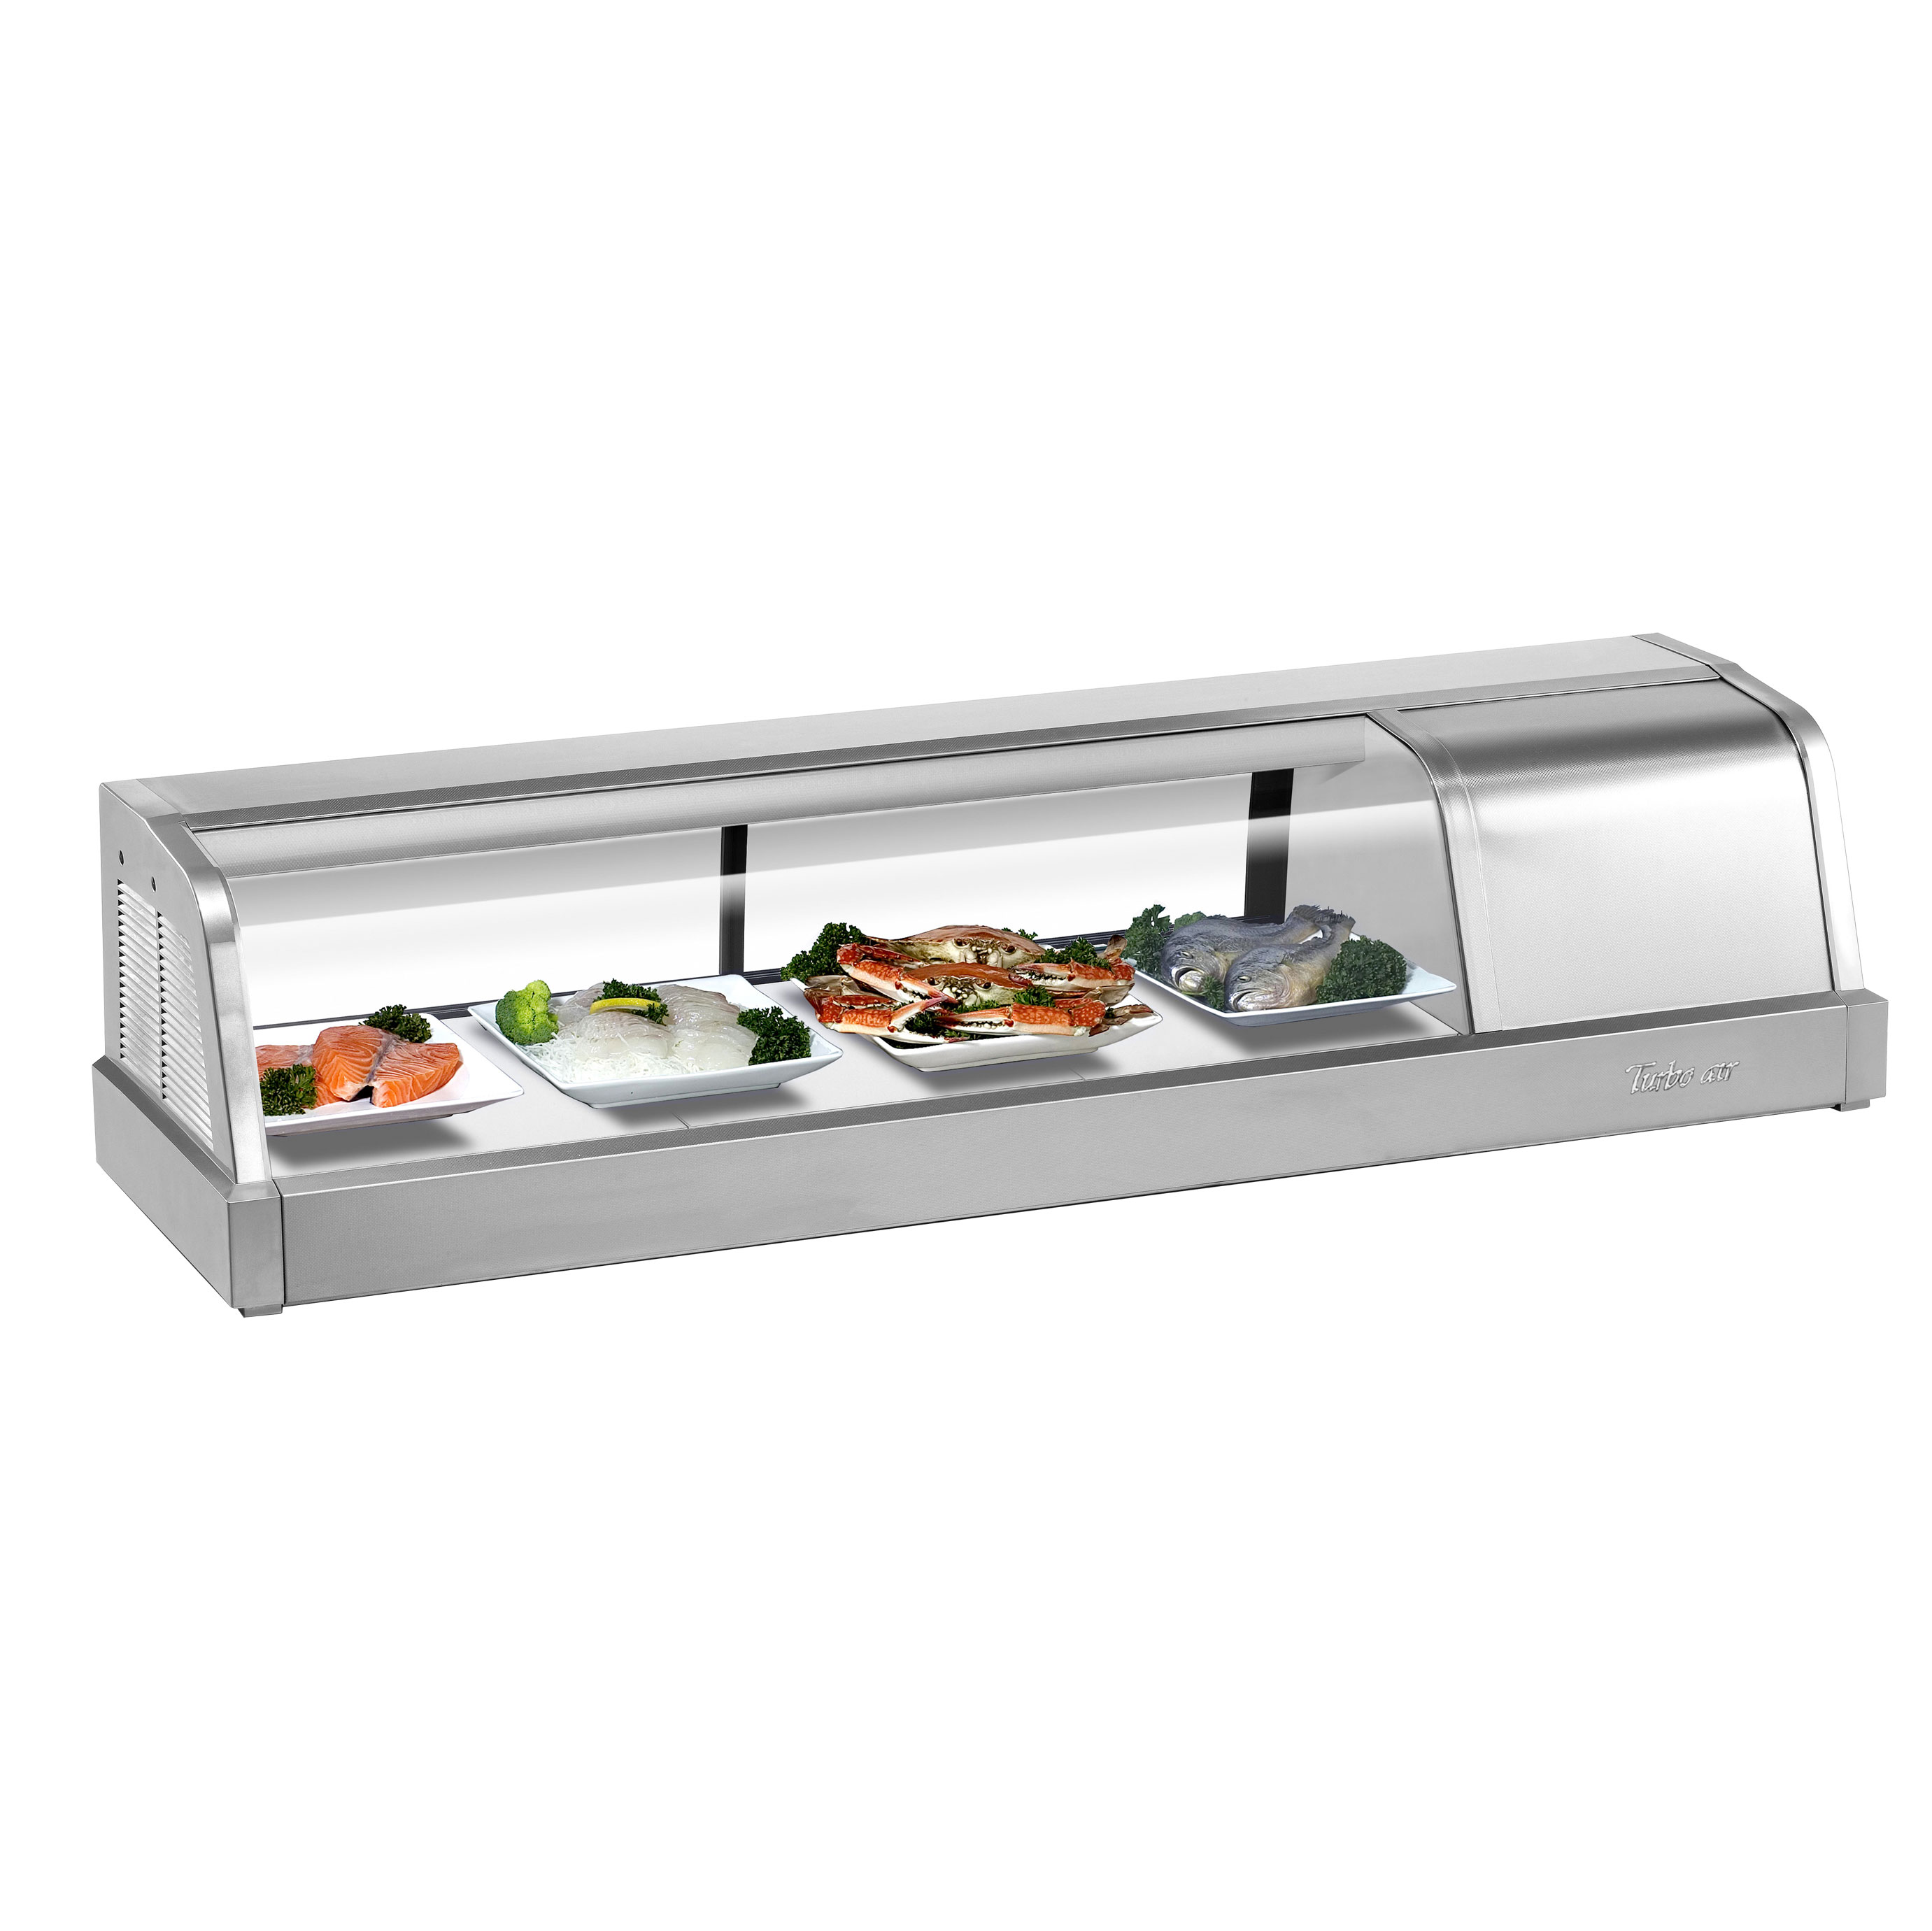 Turbo Air SAK-50R-N display case, refrigerated sushi